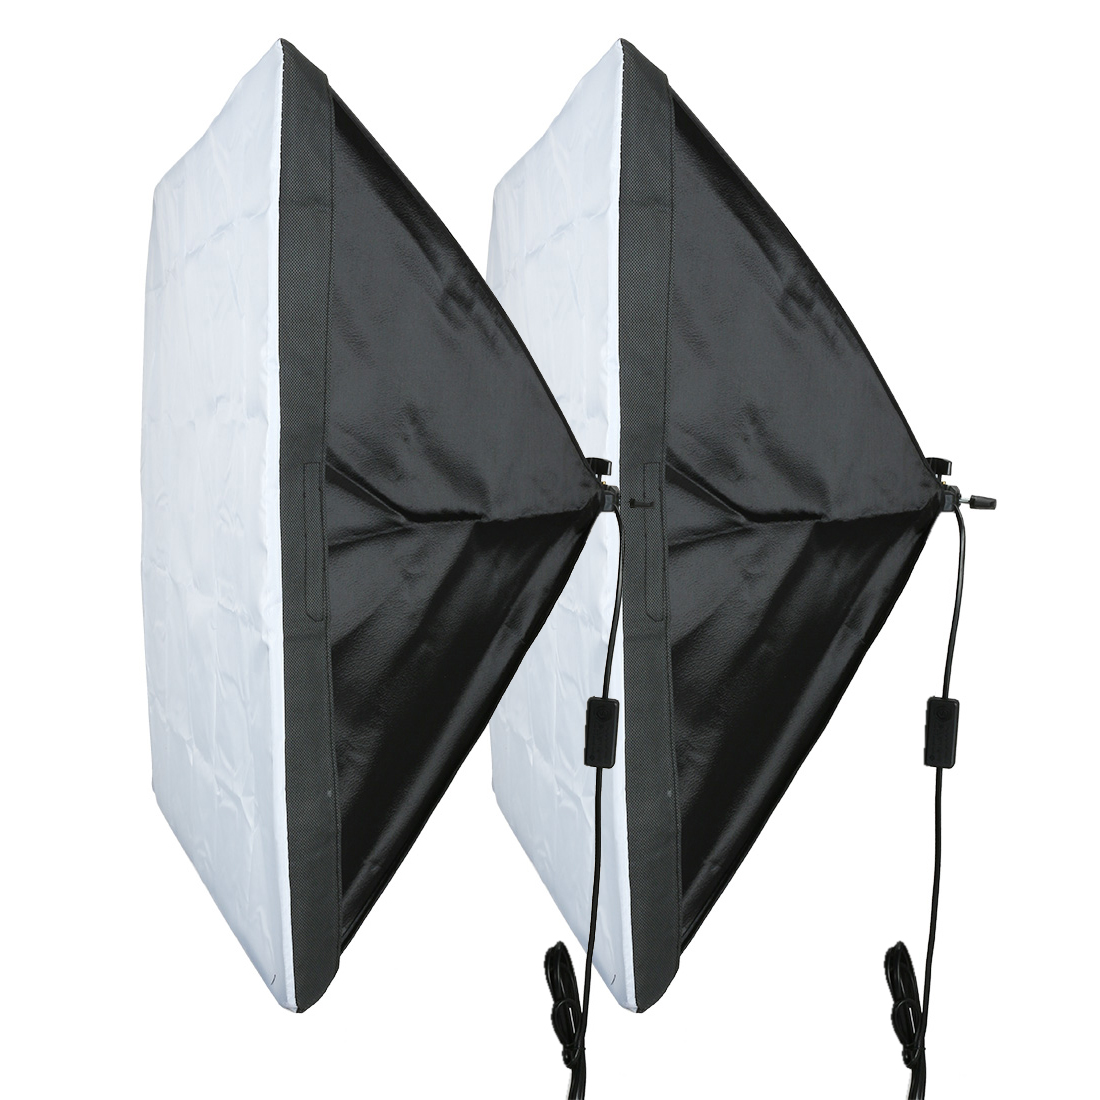 2Pcs US Plug 60cmx60cm Single Flash Umbrella Softbox for Photo Video Studio